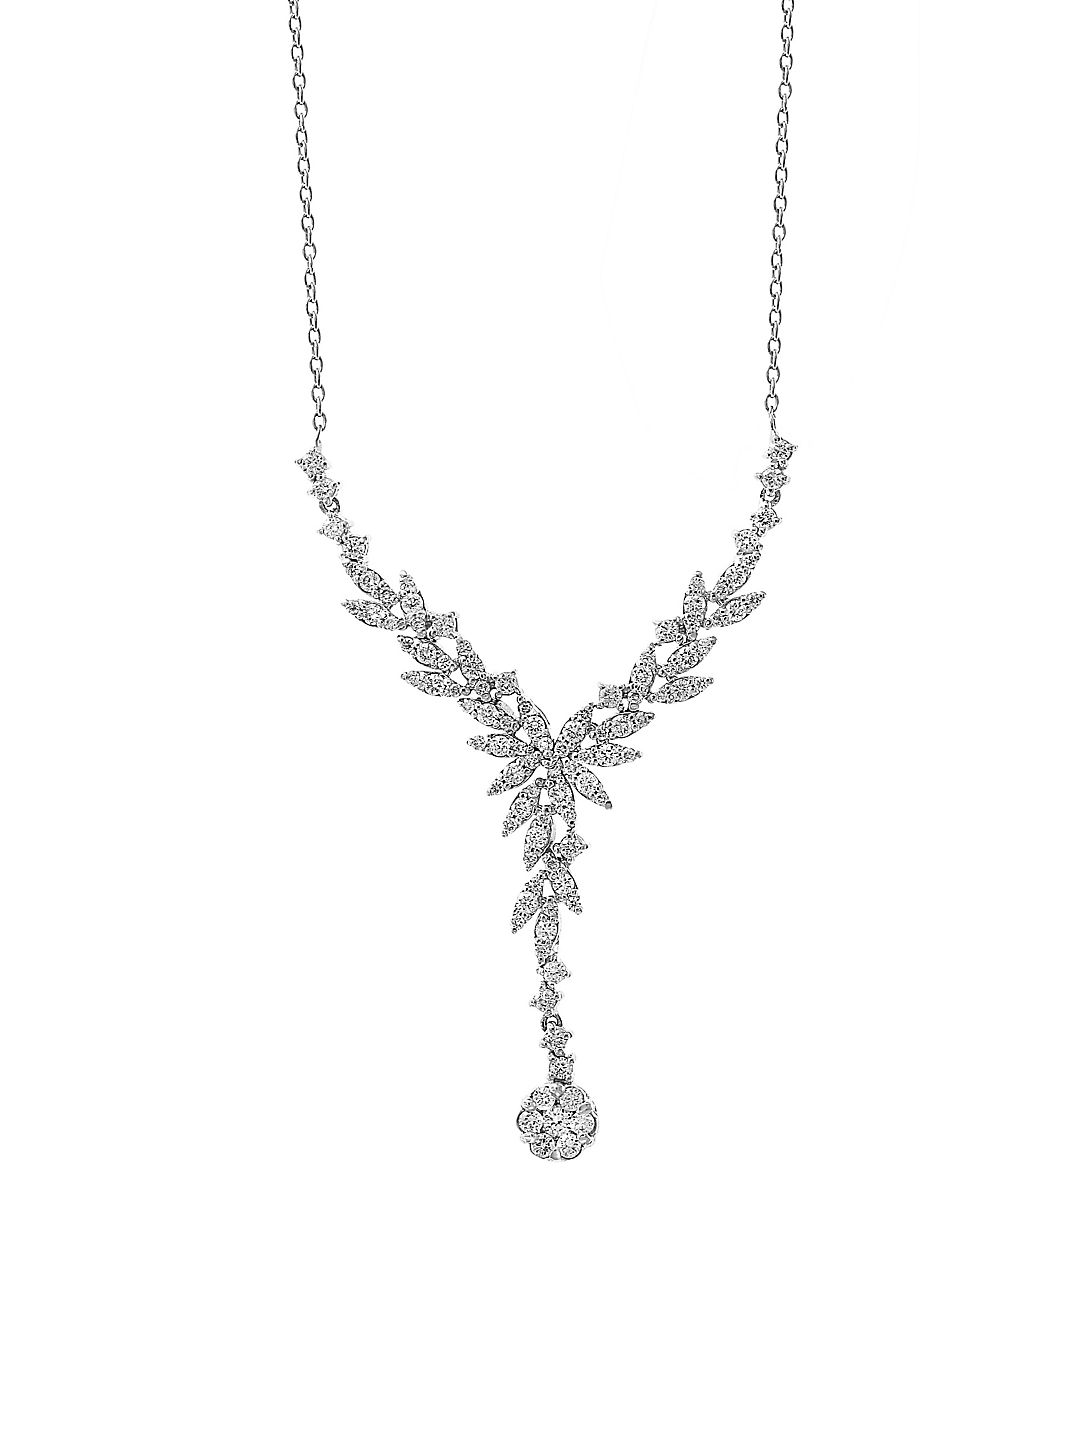 14K White Gold and White Diamond Y-Necklace